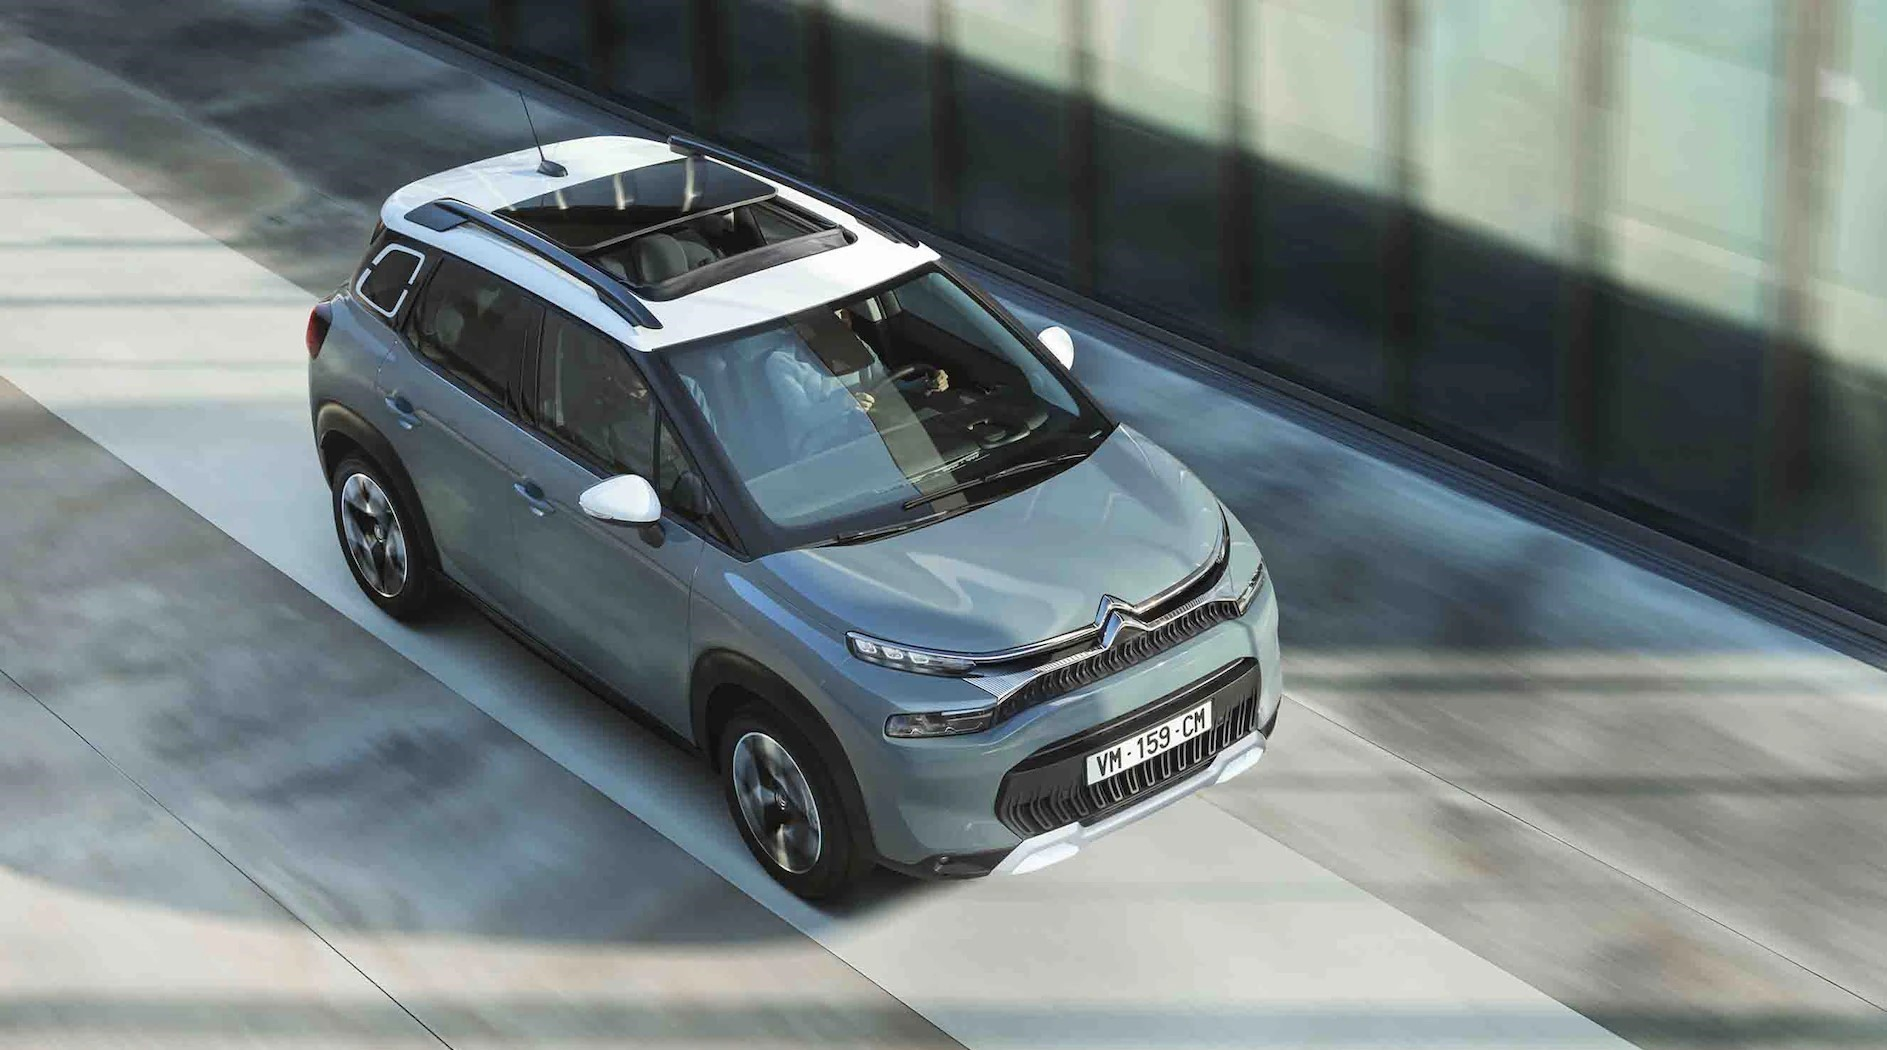 Citroen C3 Aircross - Overview